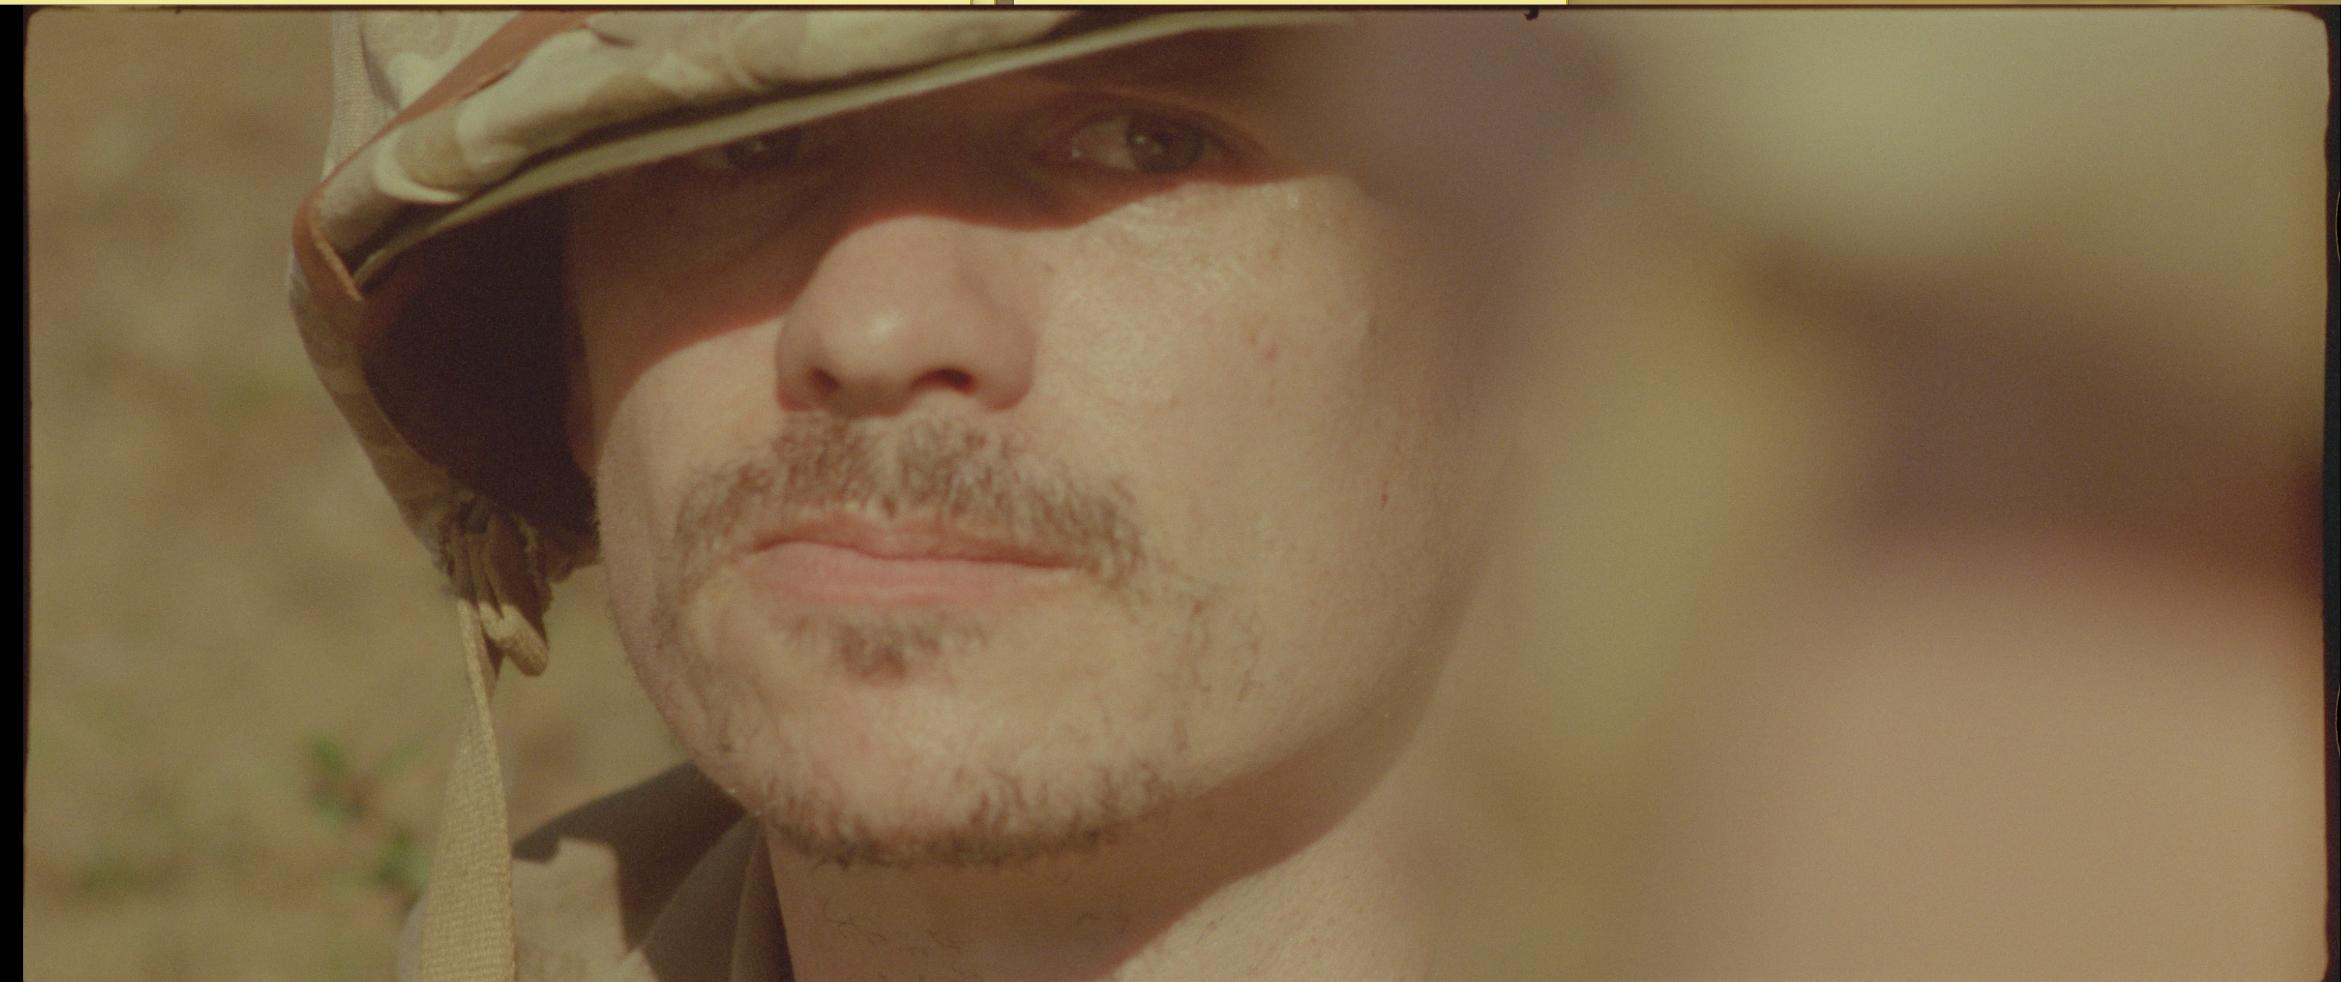 Aaron Jay Rome as Lou in Last Patrol on Okinawa